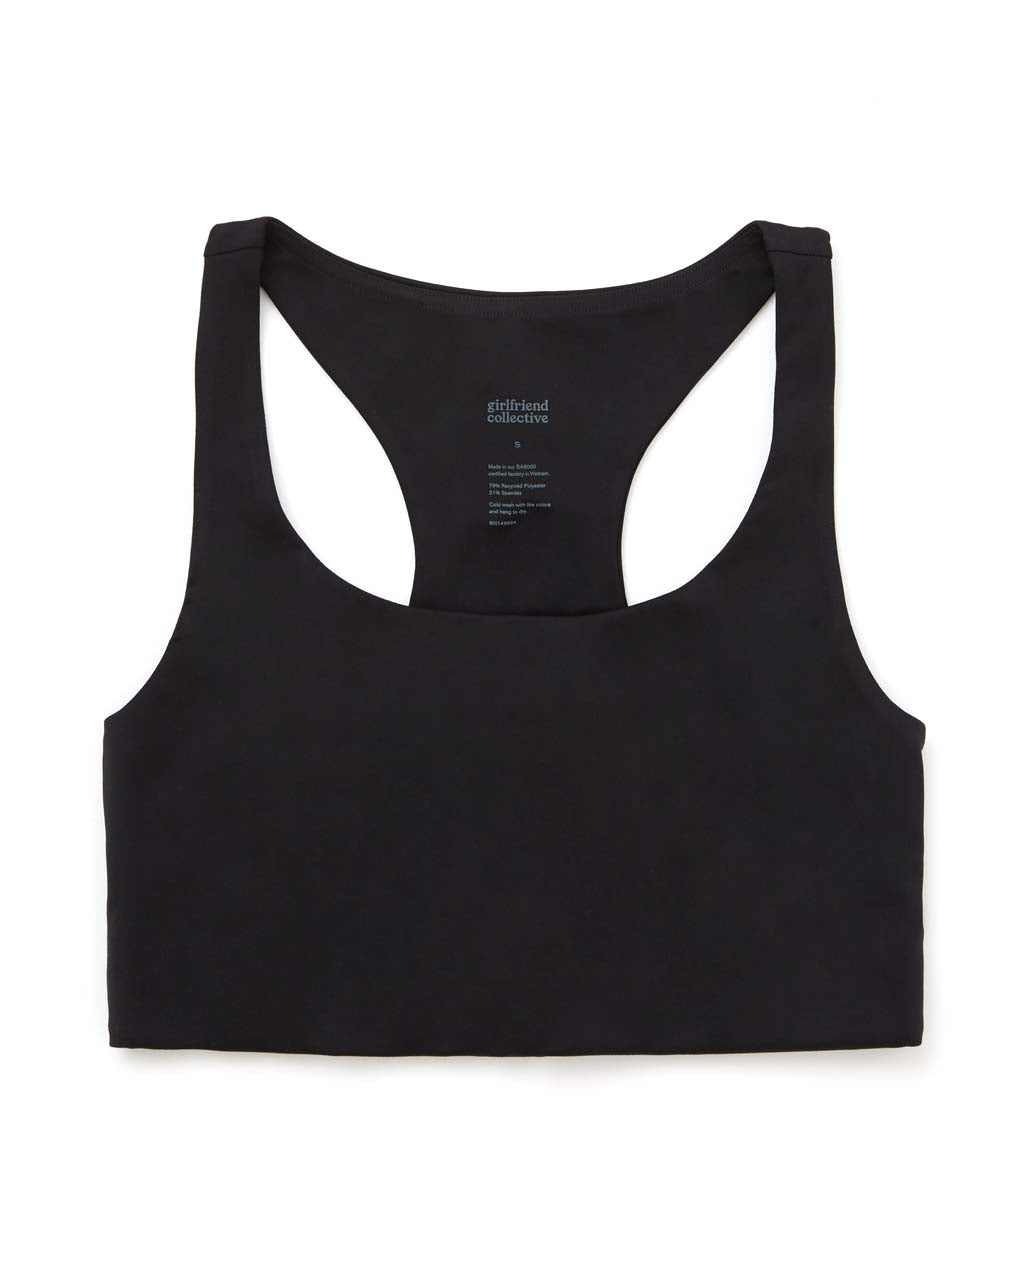 Scoop neck and support band, for style and comfort.